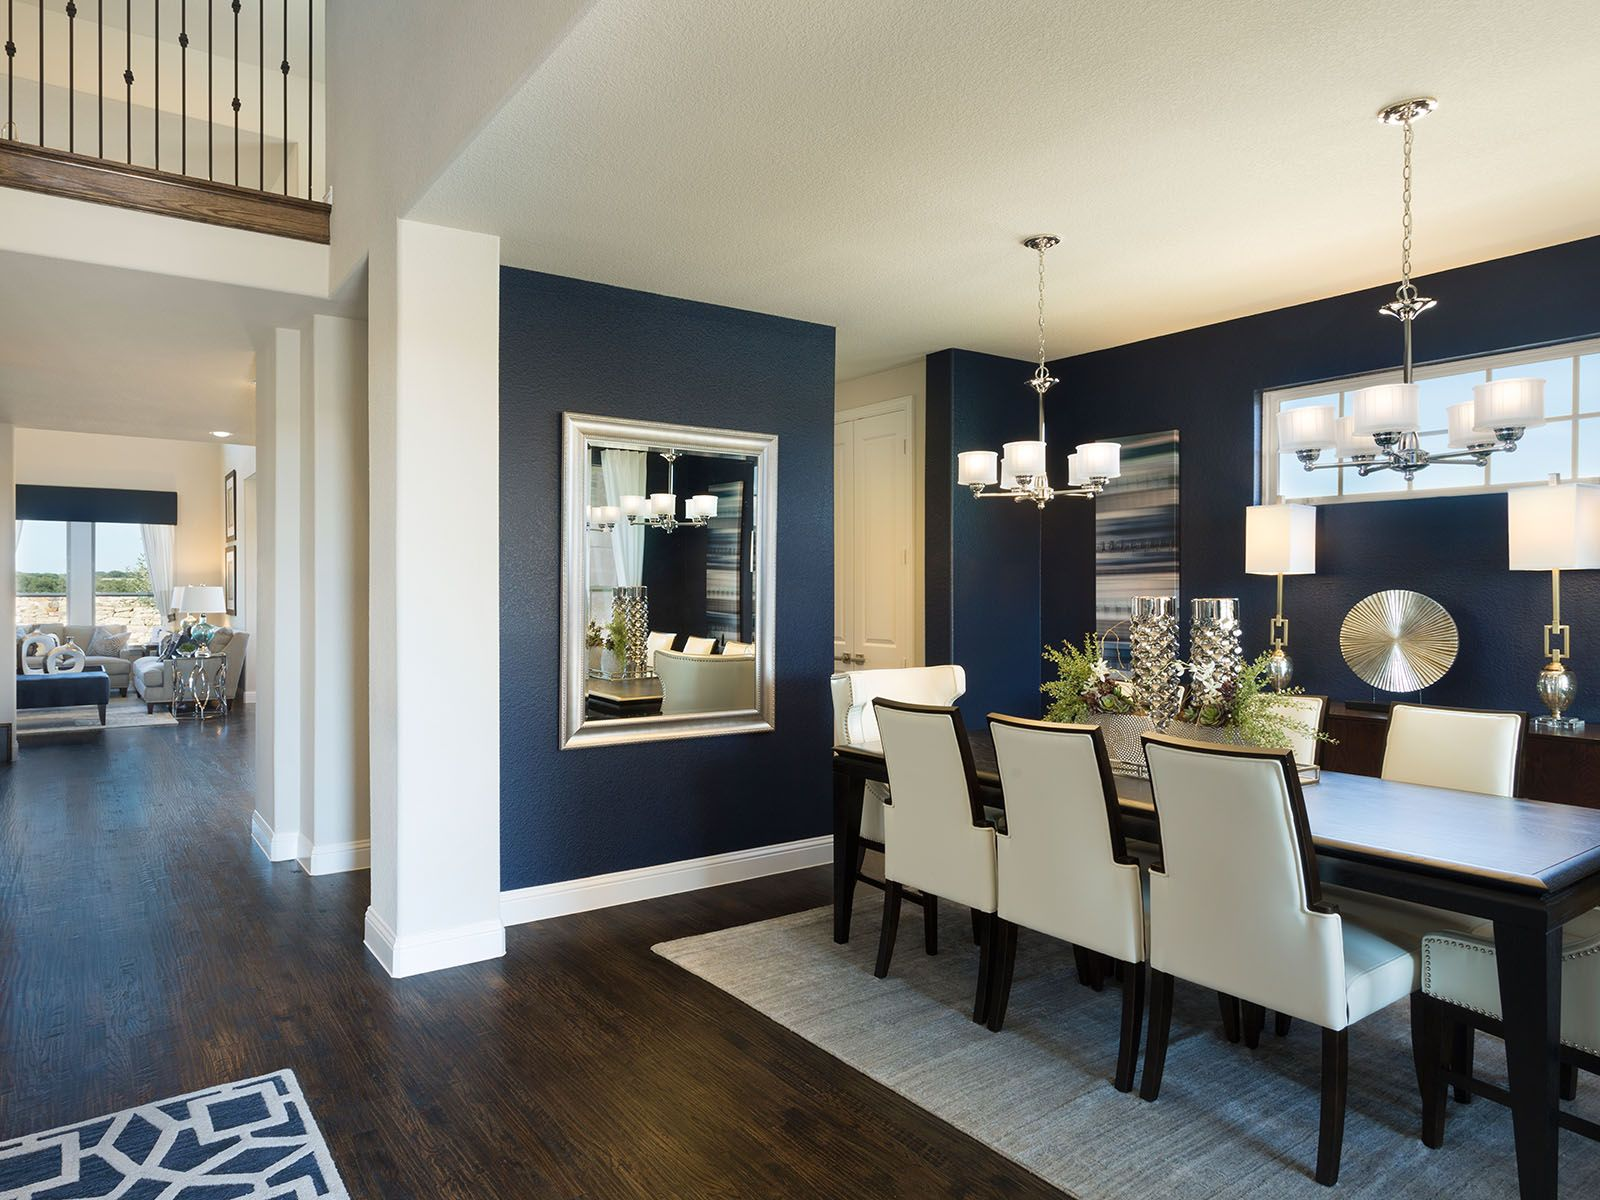 meritage homes model home lantana beautiful navy walls dining room with ivory dining chairs. Black Bedroom Furniture Sets. Home Design Ideas